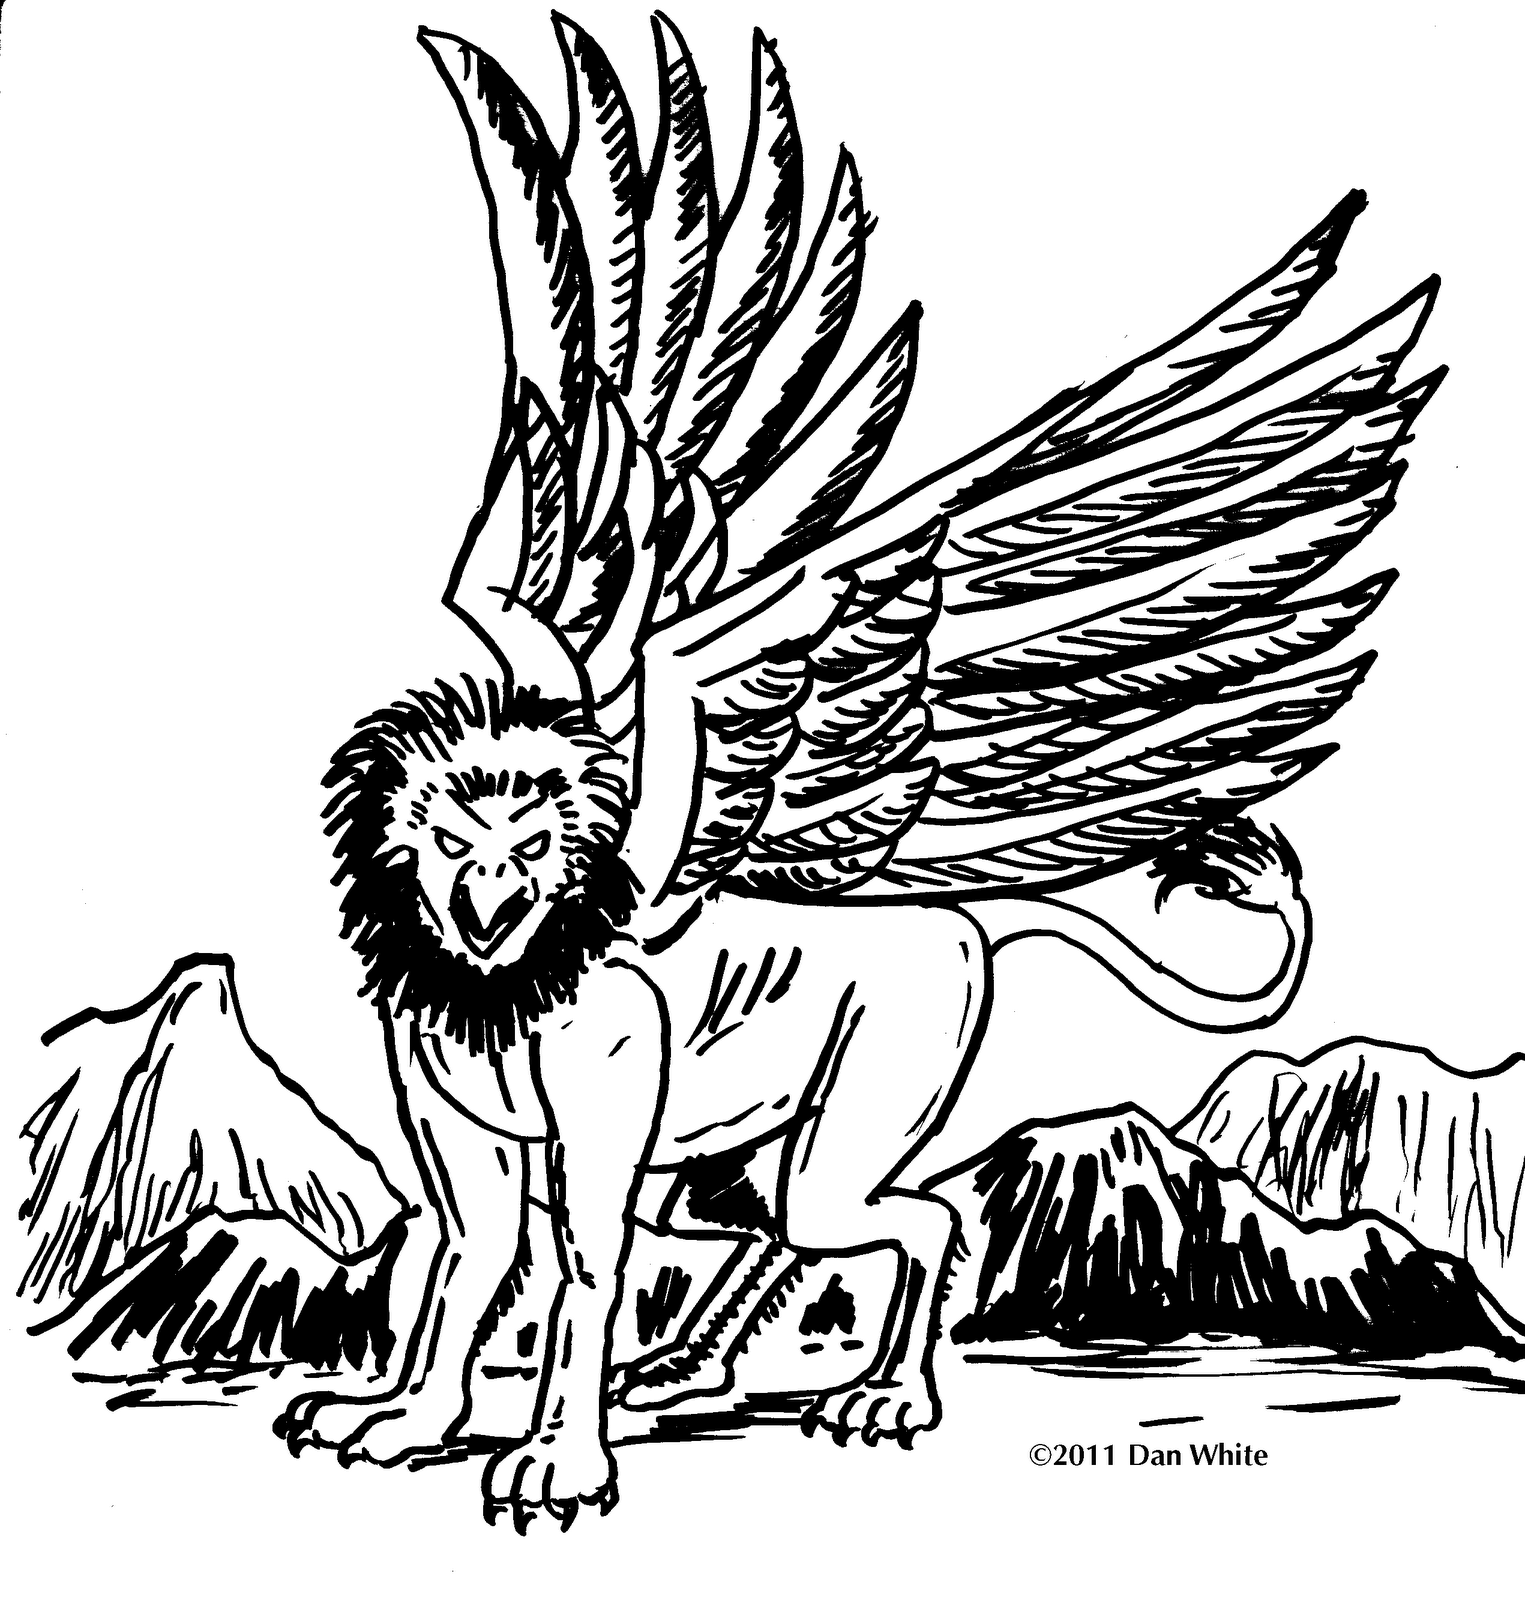 gryphon or spell it